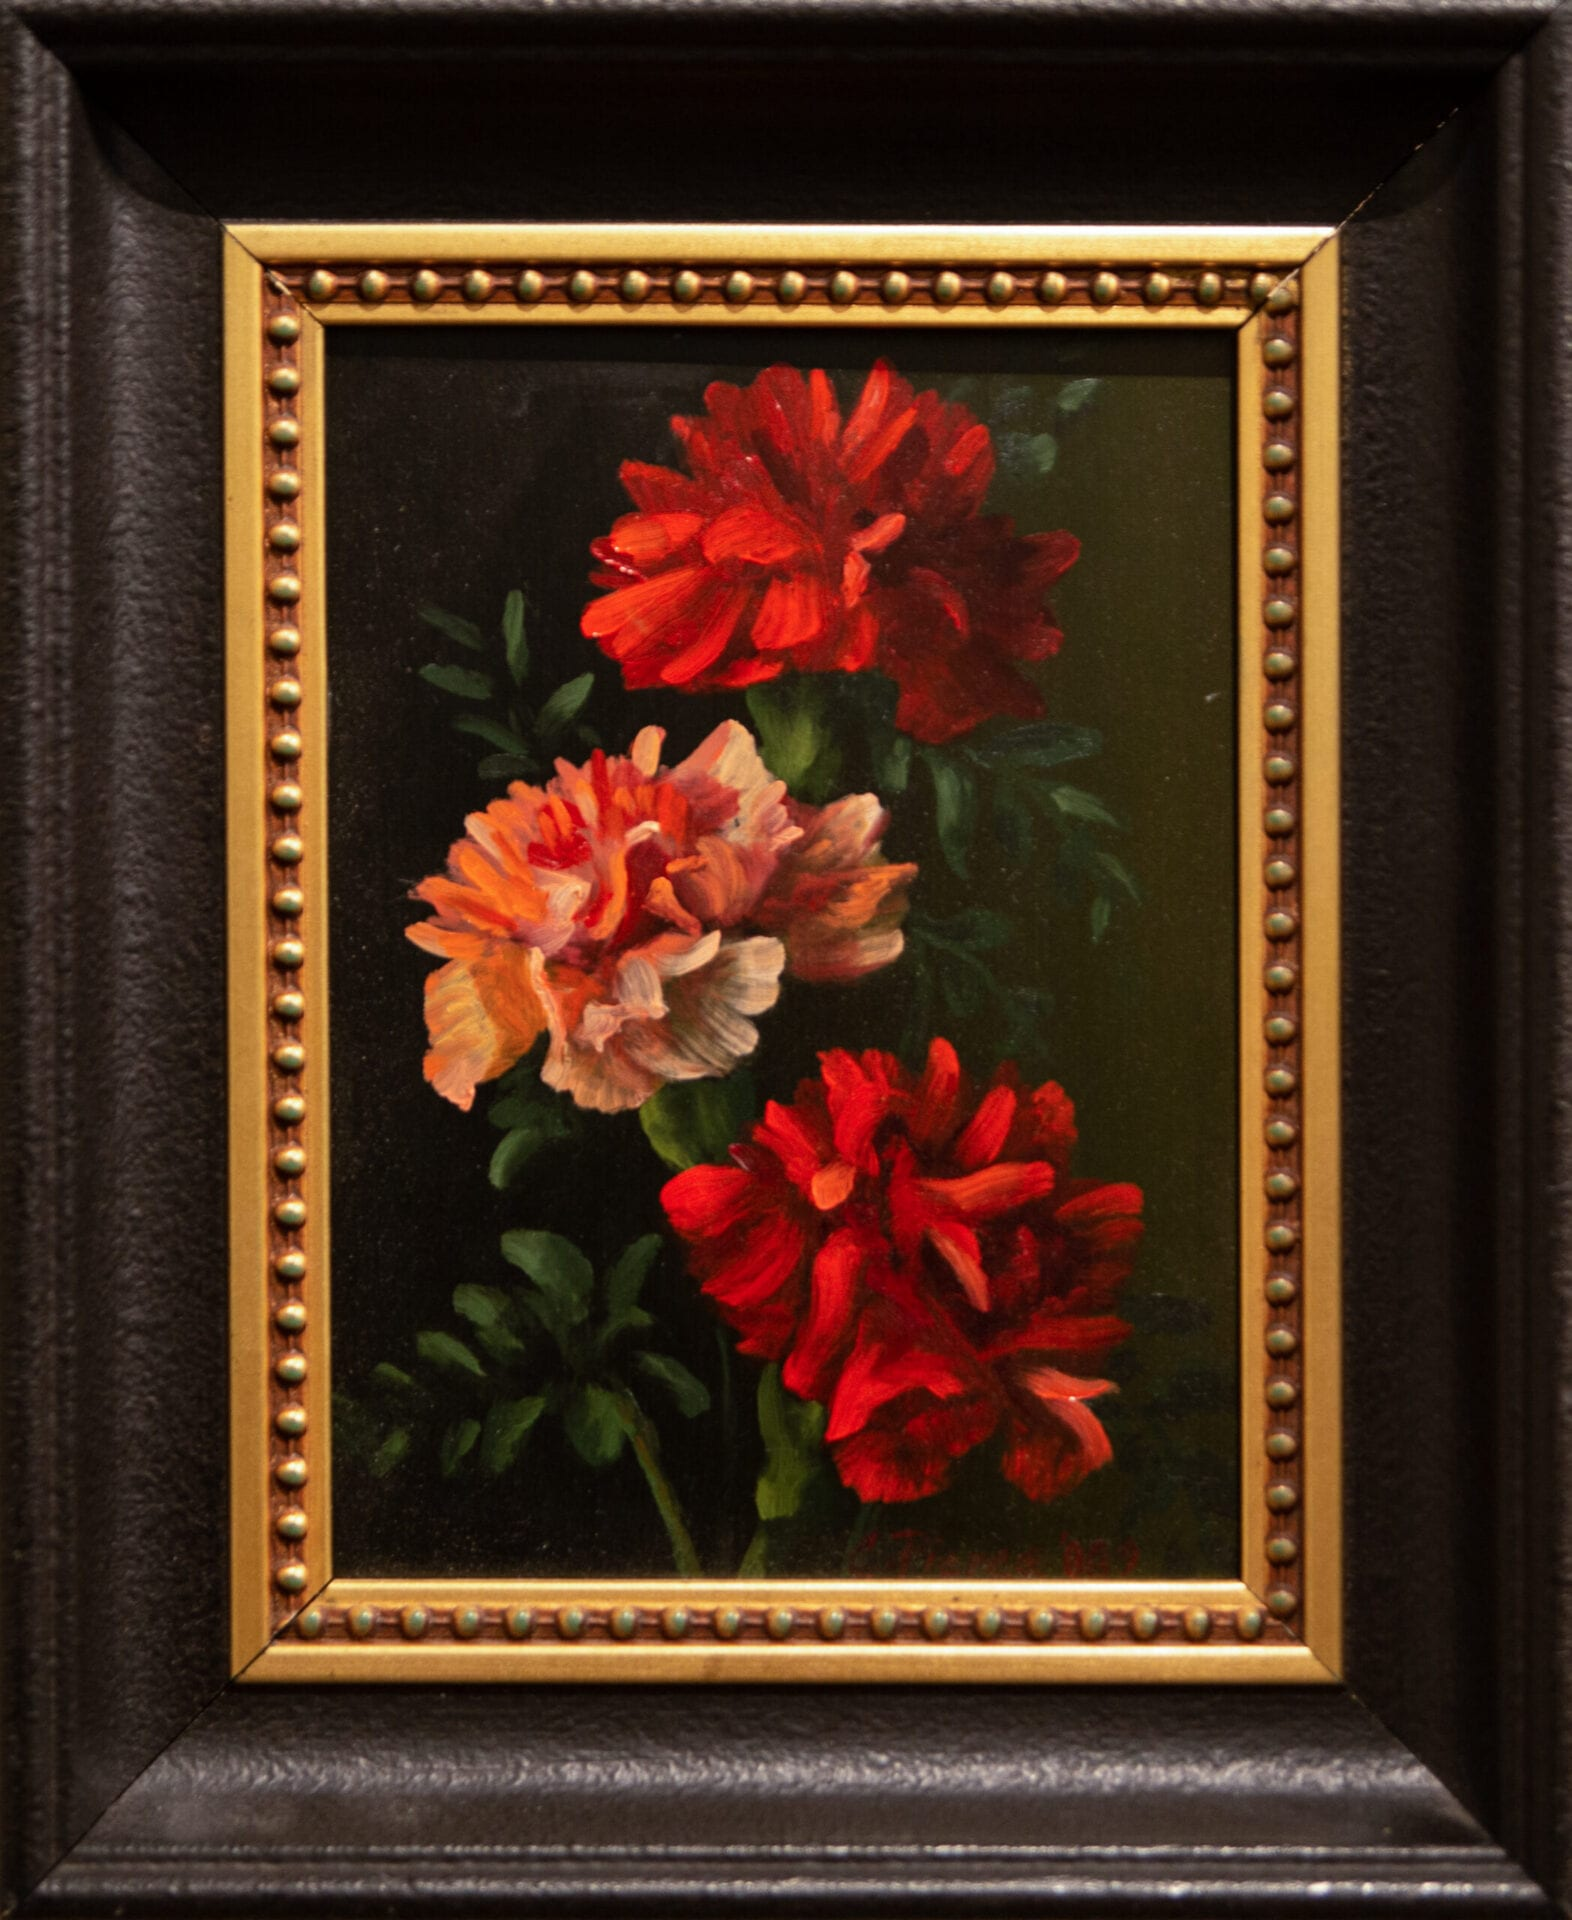 Three Carnations | Christopher Pierce | Oil | 8 x 6""